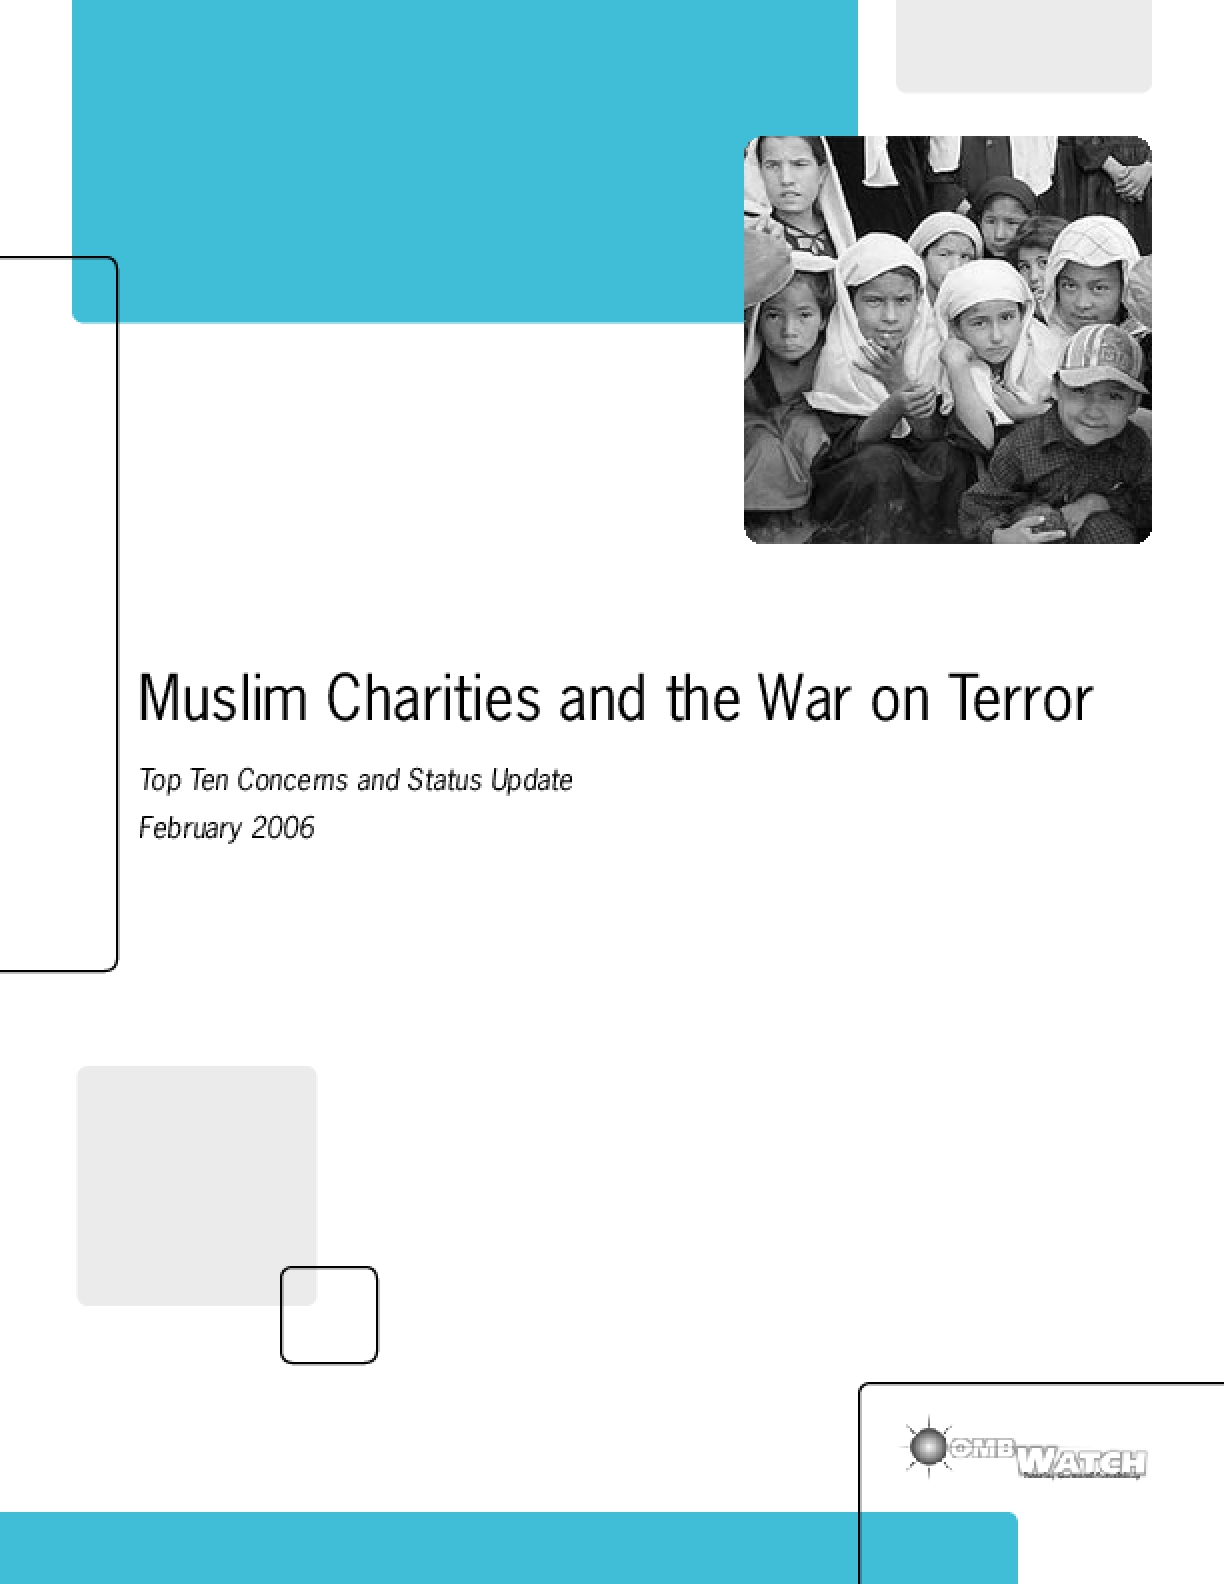 Muslim Charities and the War on Terror: Top Ten Concerns and Status Update February 2006